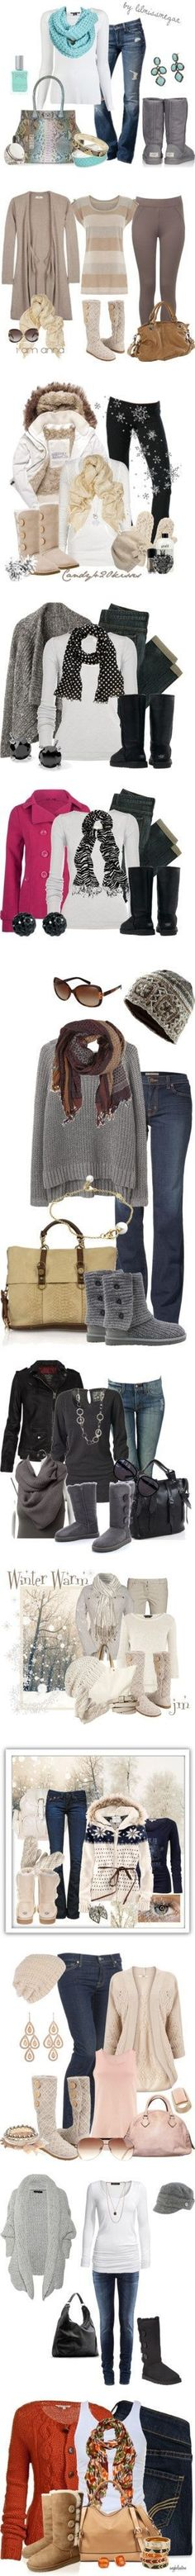 Cute and casual ugg boot outfits (winter/fall) by nataliexsnowxwhite on Polyvore ugg Cyber Monday View More: www.yi5.org